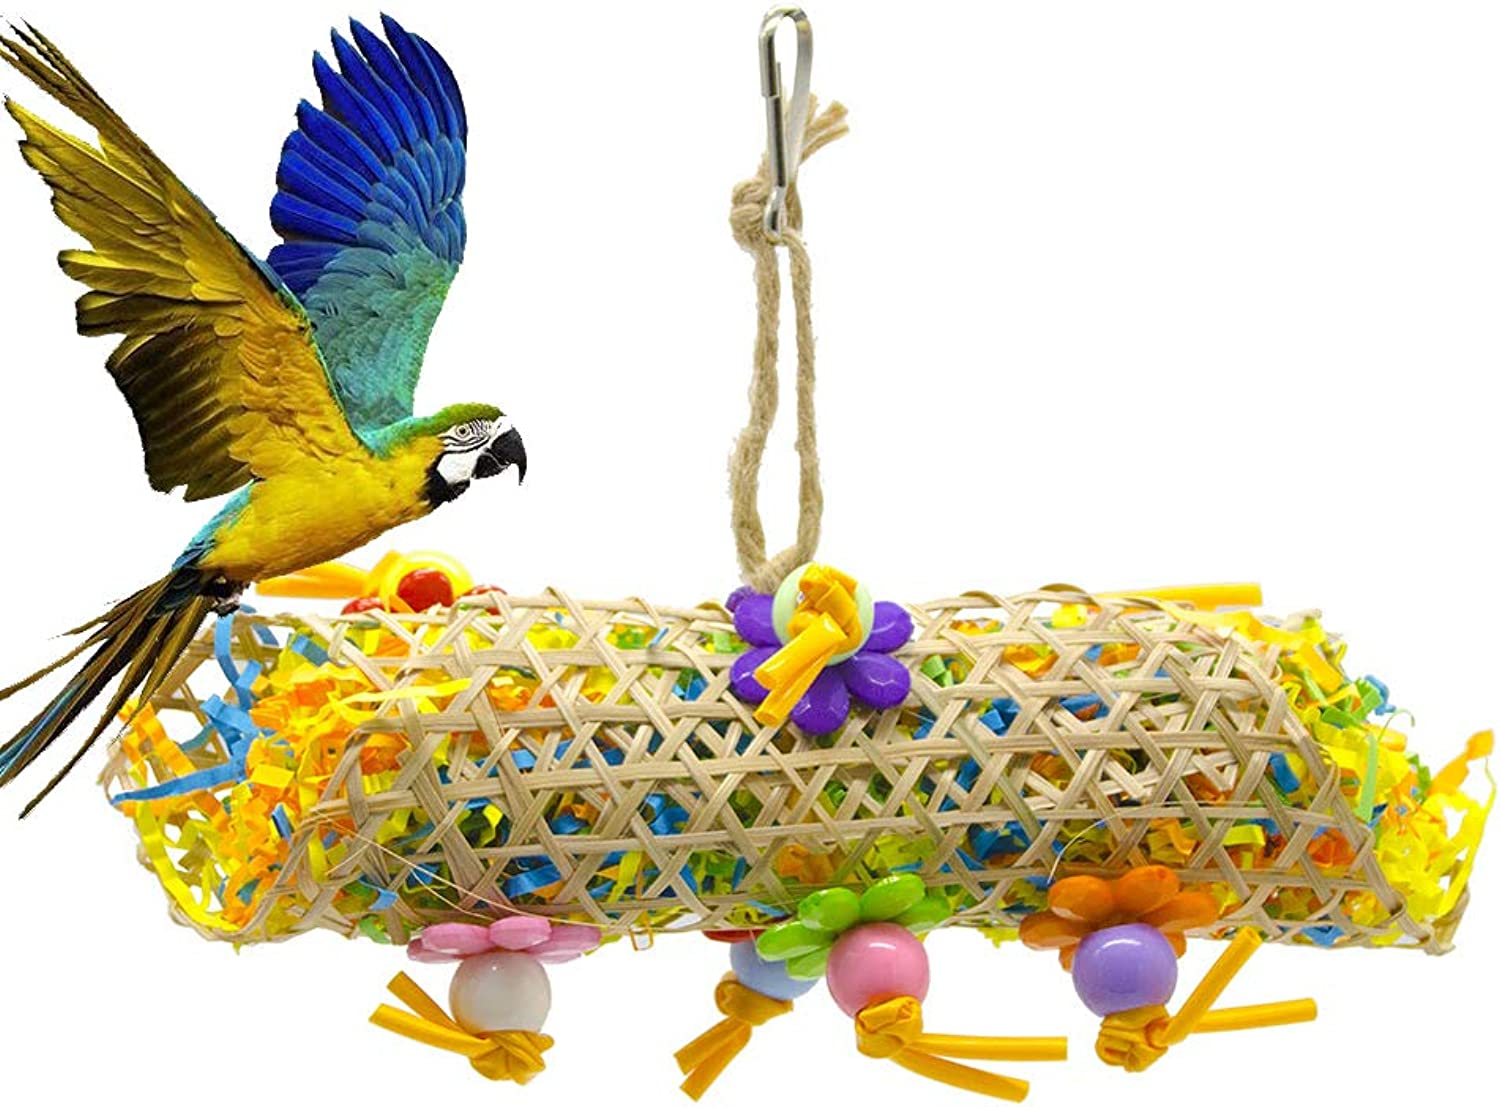 Bird Chew Toy Parred Natural color Paper Bamboo Tube Straw Rope Bamboo Weave Finch African Parred Macaw Cage Toy Bird Cage Decoration Accessories